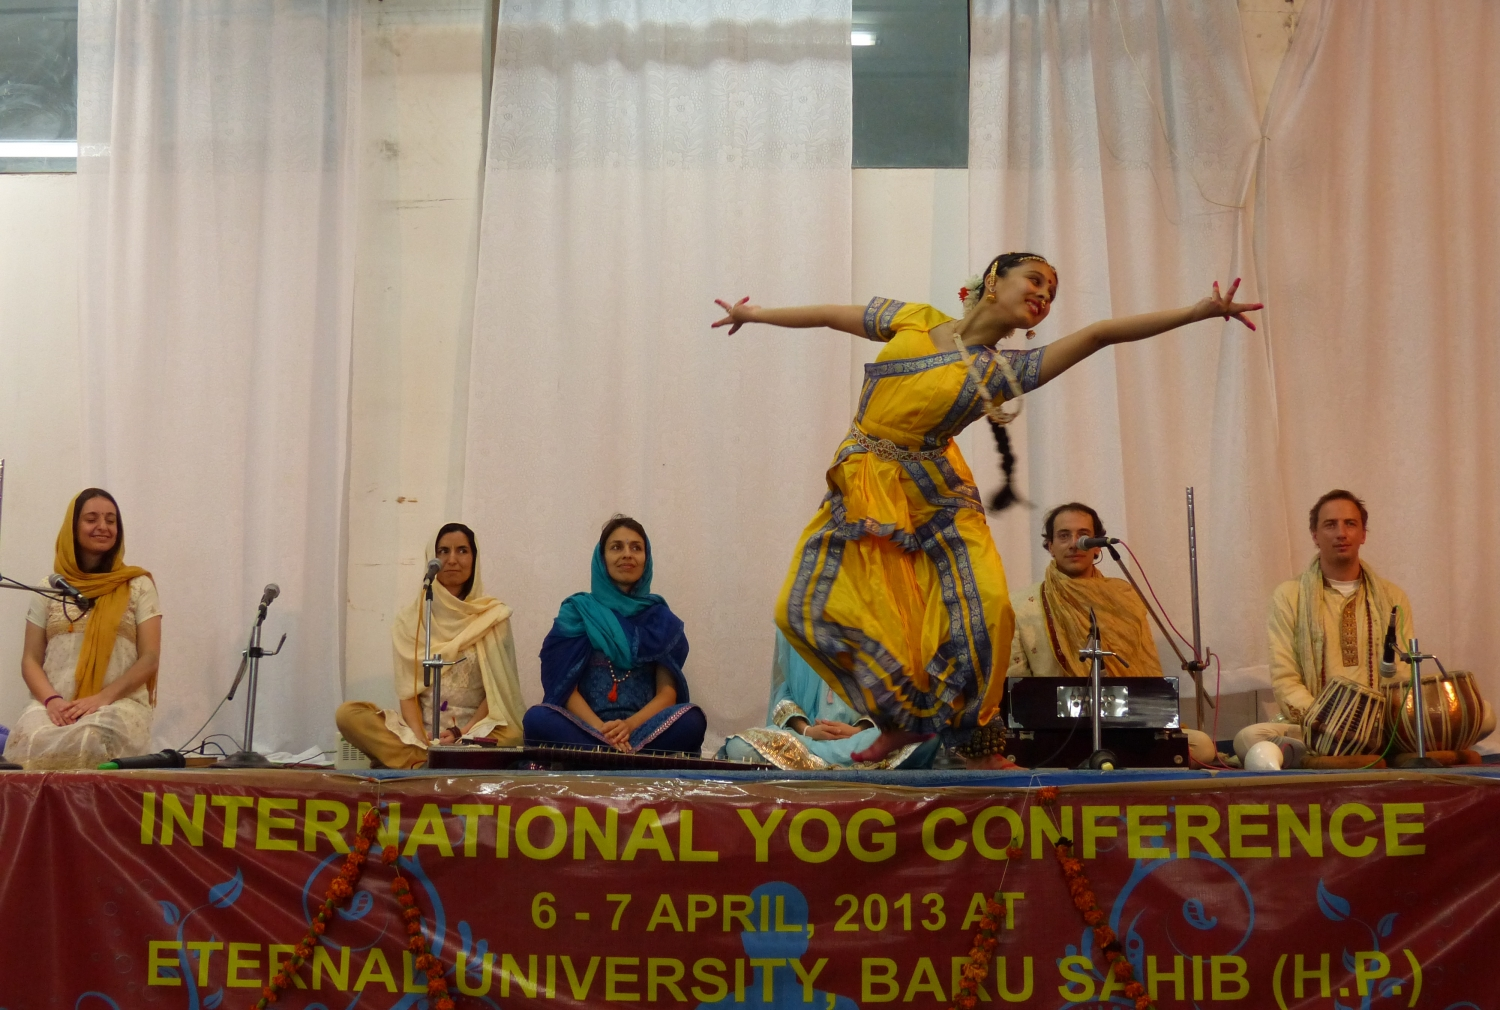 Presentation of Bháratanathyam by Shiva Rája - International Yoga Conference - Índia, Bahu Sahib, Eternal University, 2013